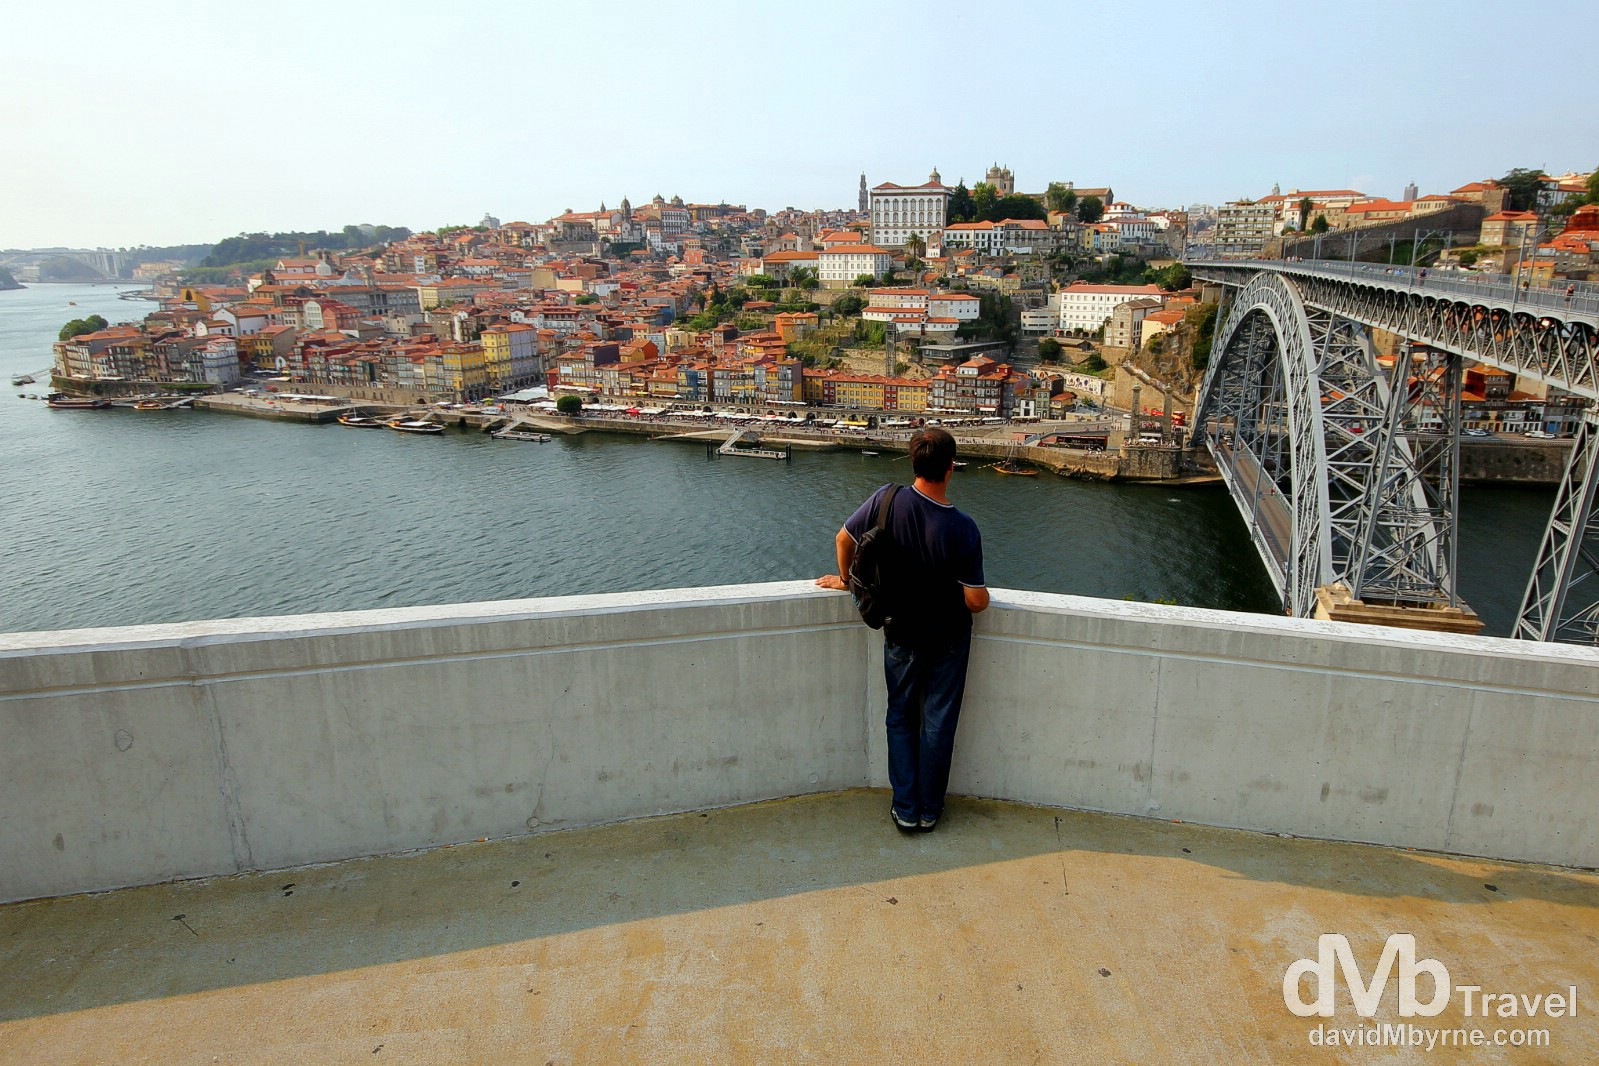 Viewing Porto & the Douro River from the Jardin do Morro, Porto, Portugal. August 28th 2013.